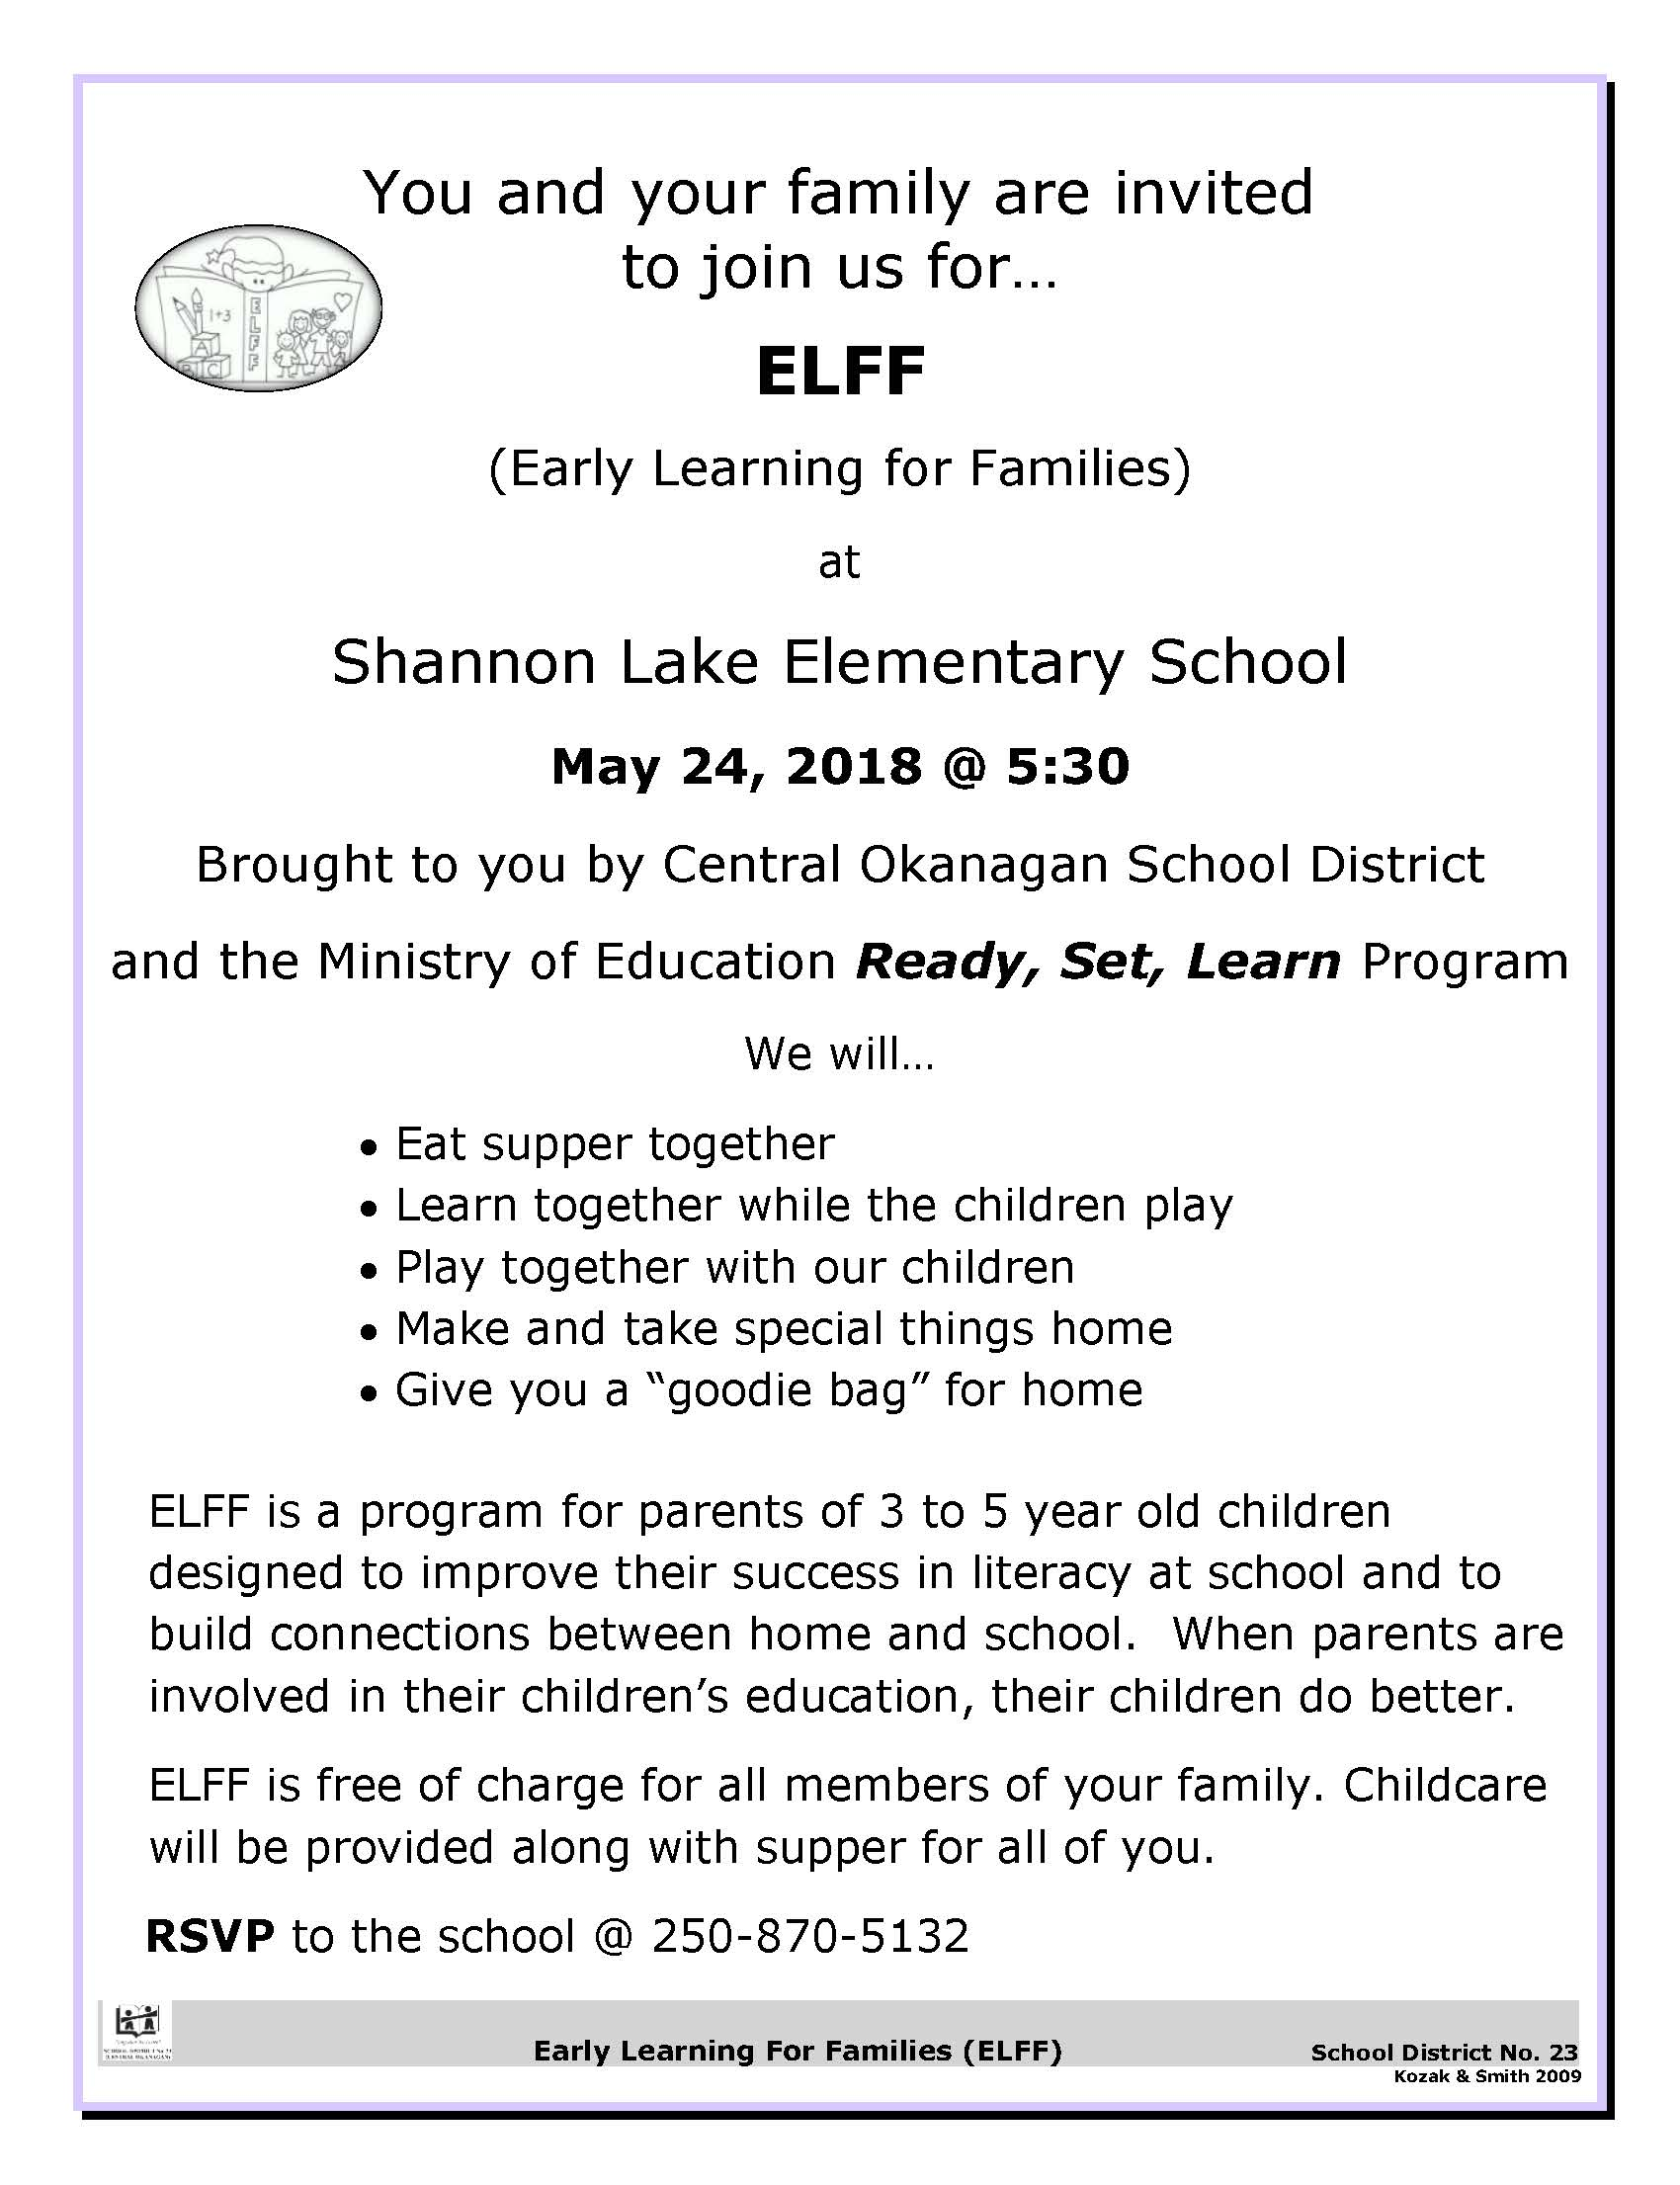 ELFF Information Form (Shannon Lake) - May 24, 2018.jpg